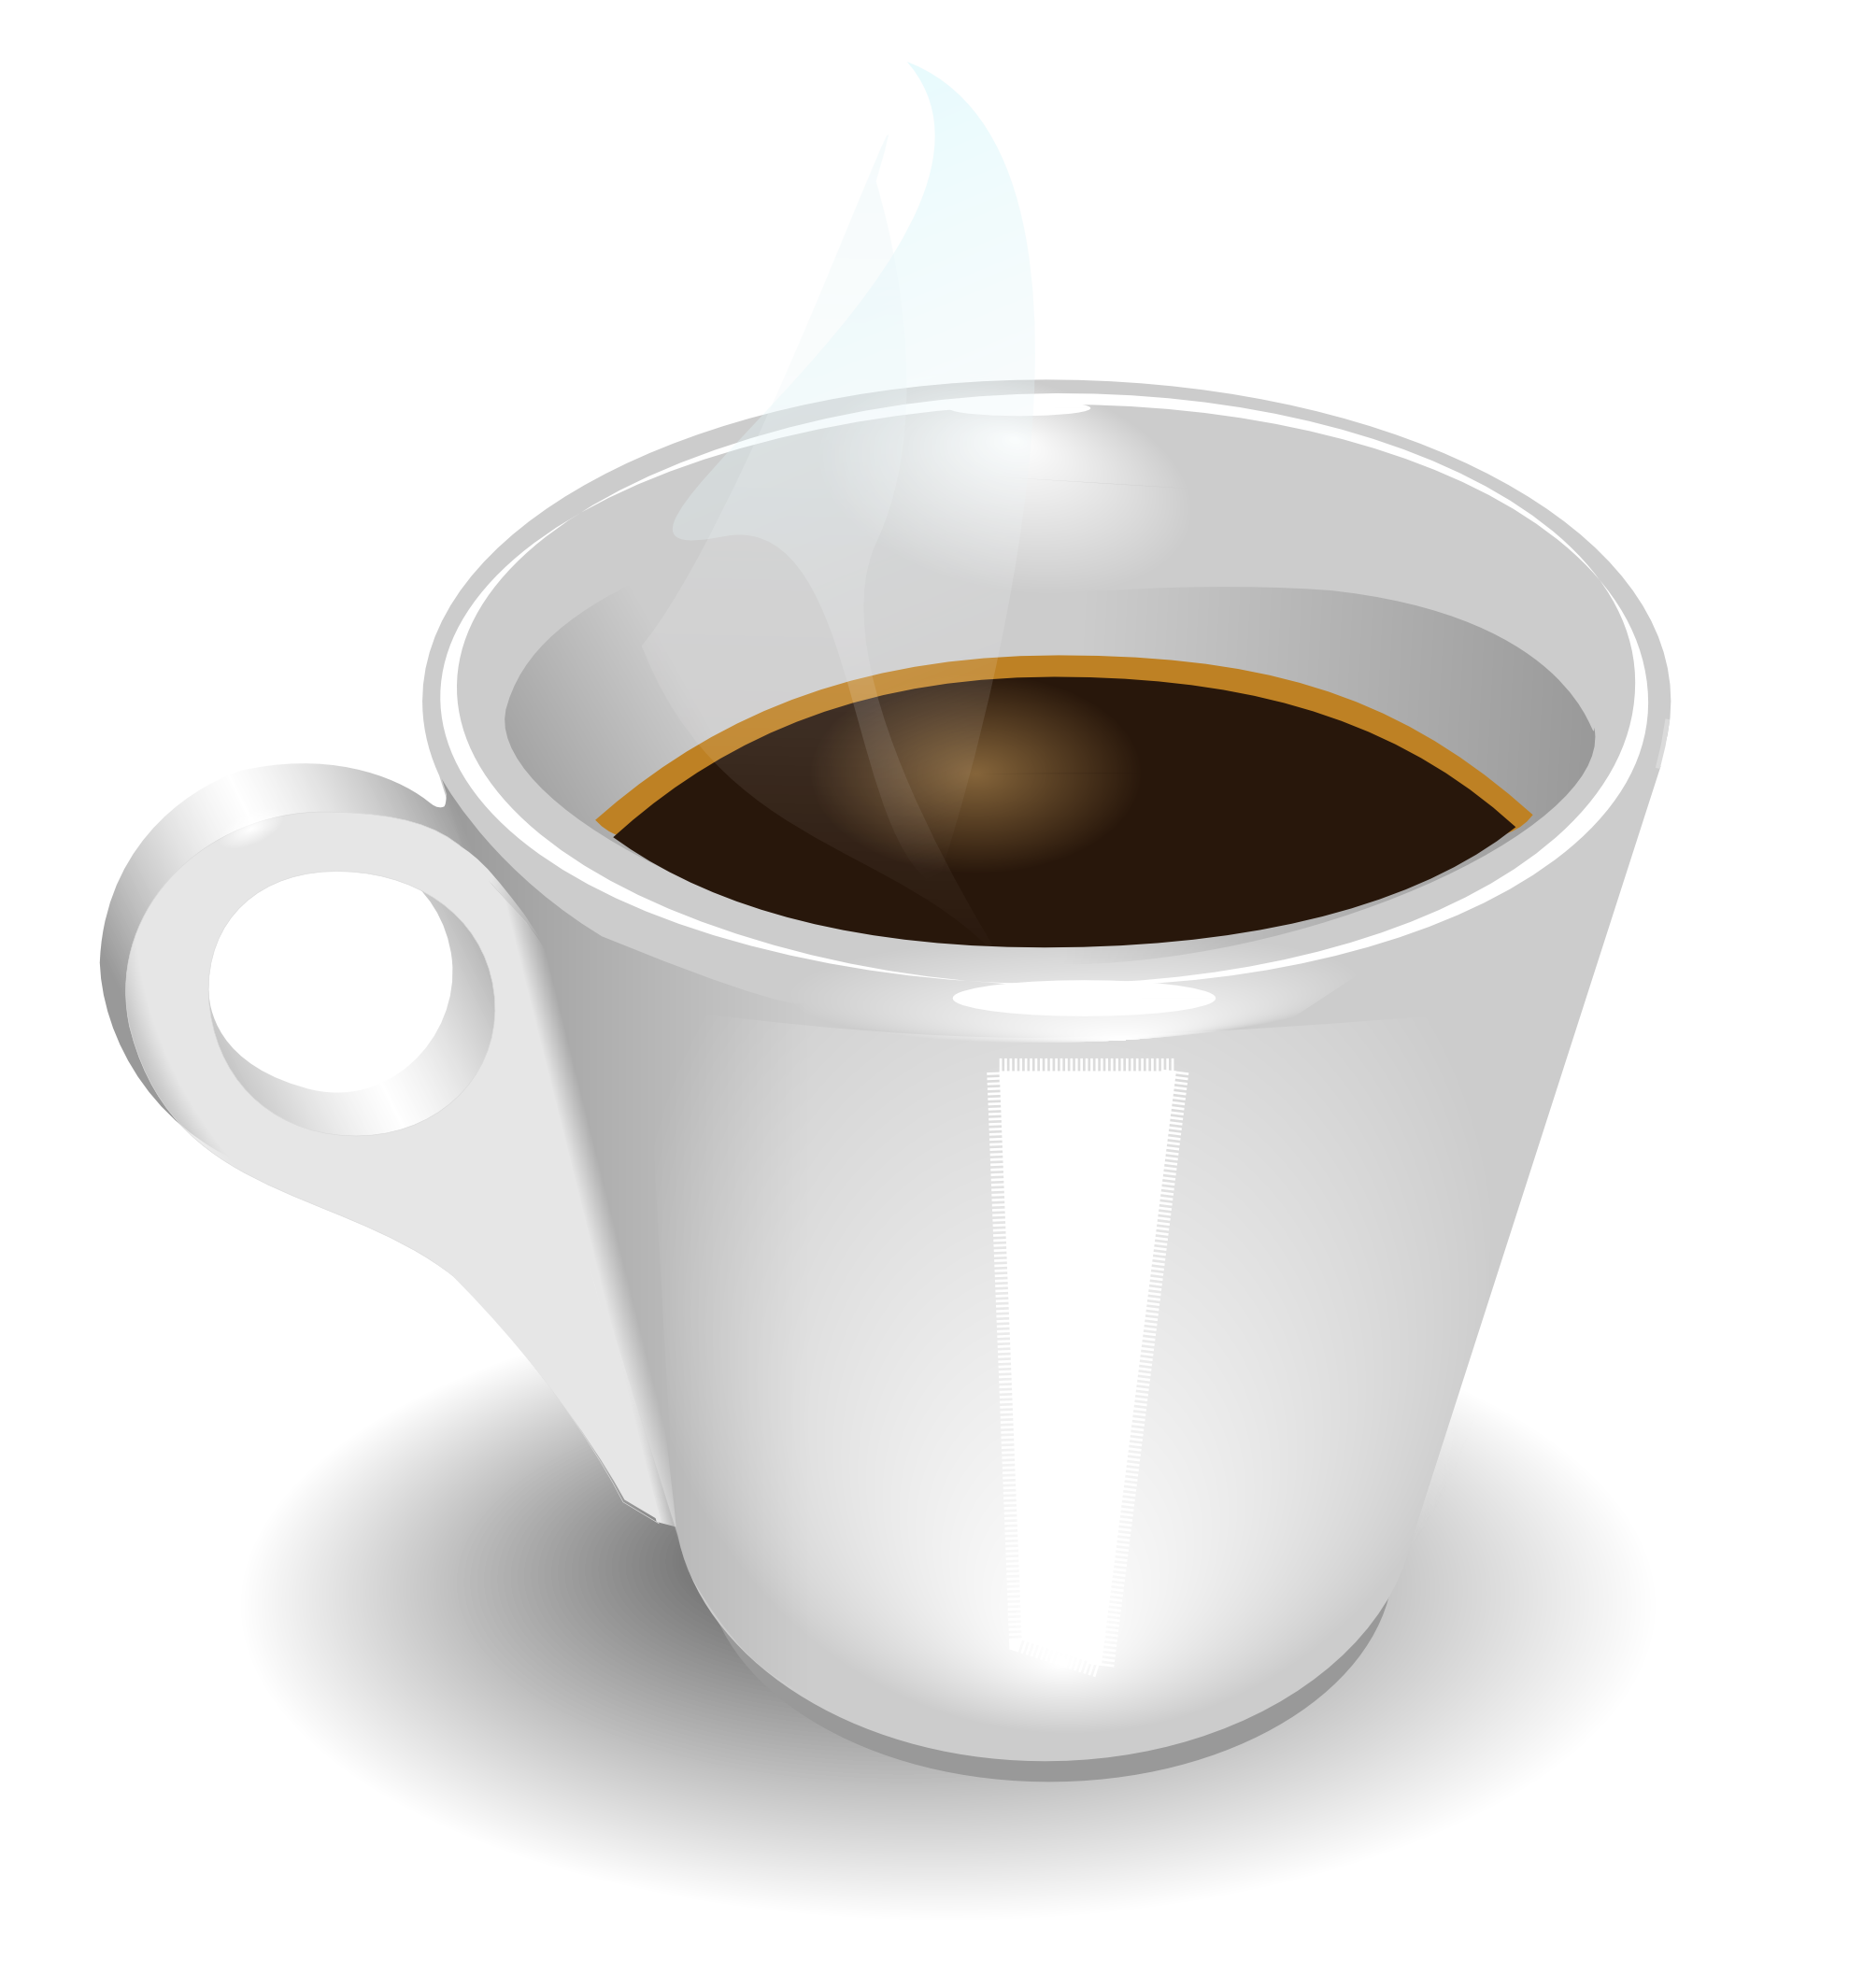 coffe cup png